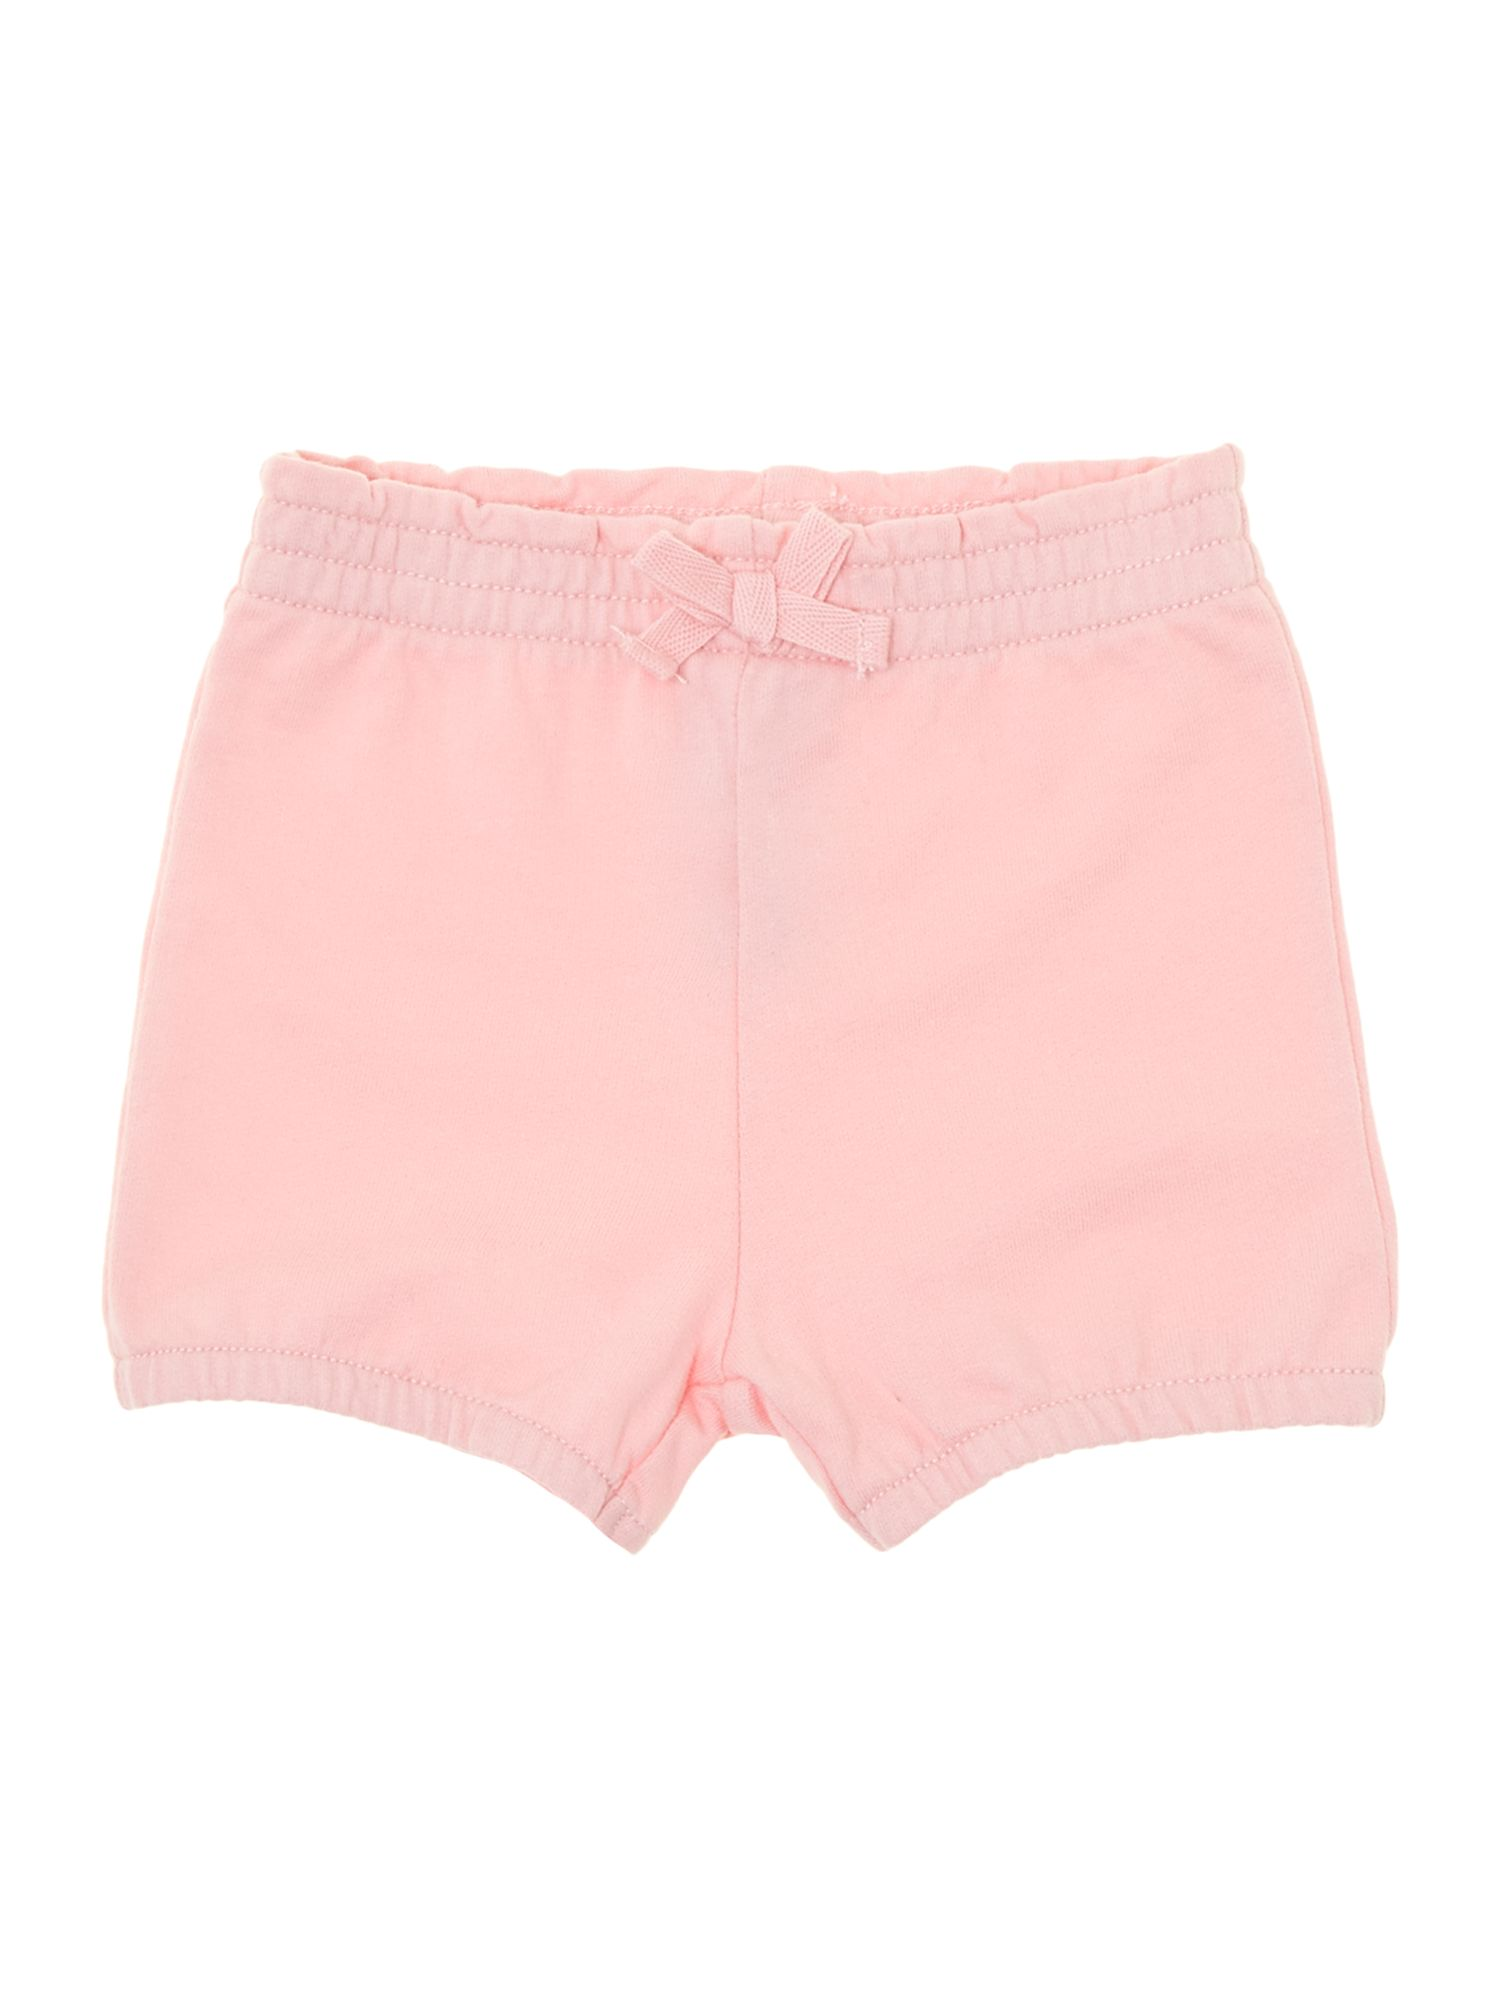 Girls jersey bow shorts